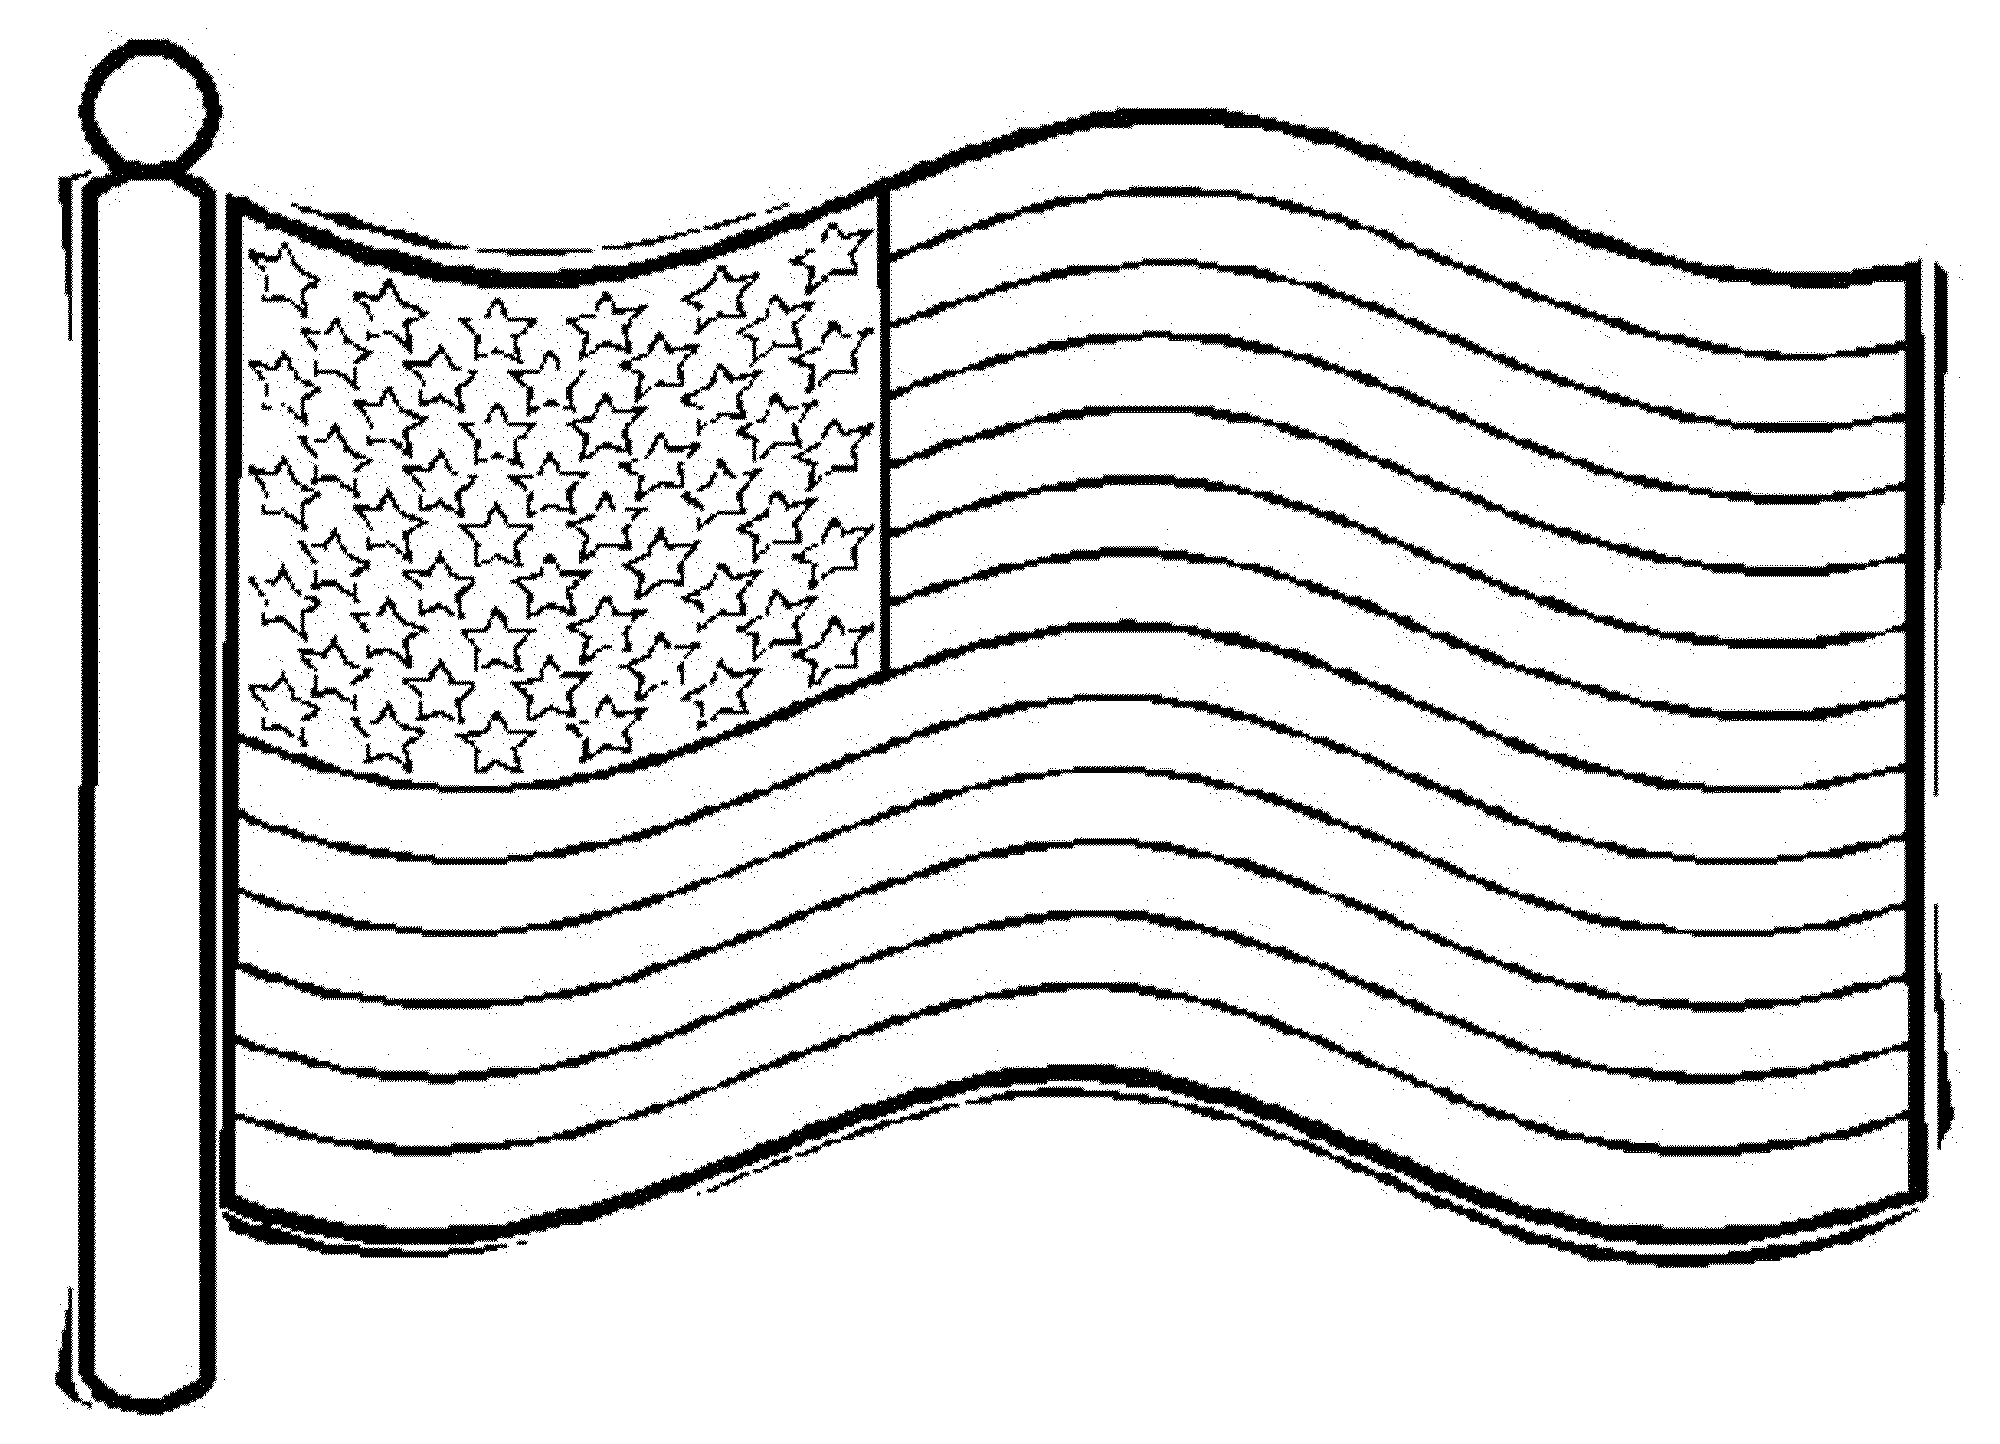 american flag coloring pages american flag coloring pages coloring pages to download pages flag coloring american